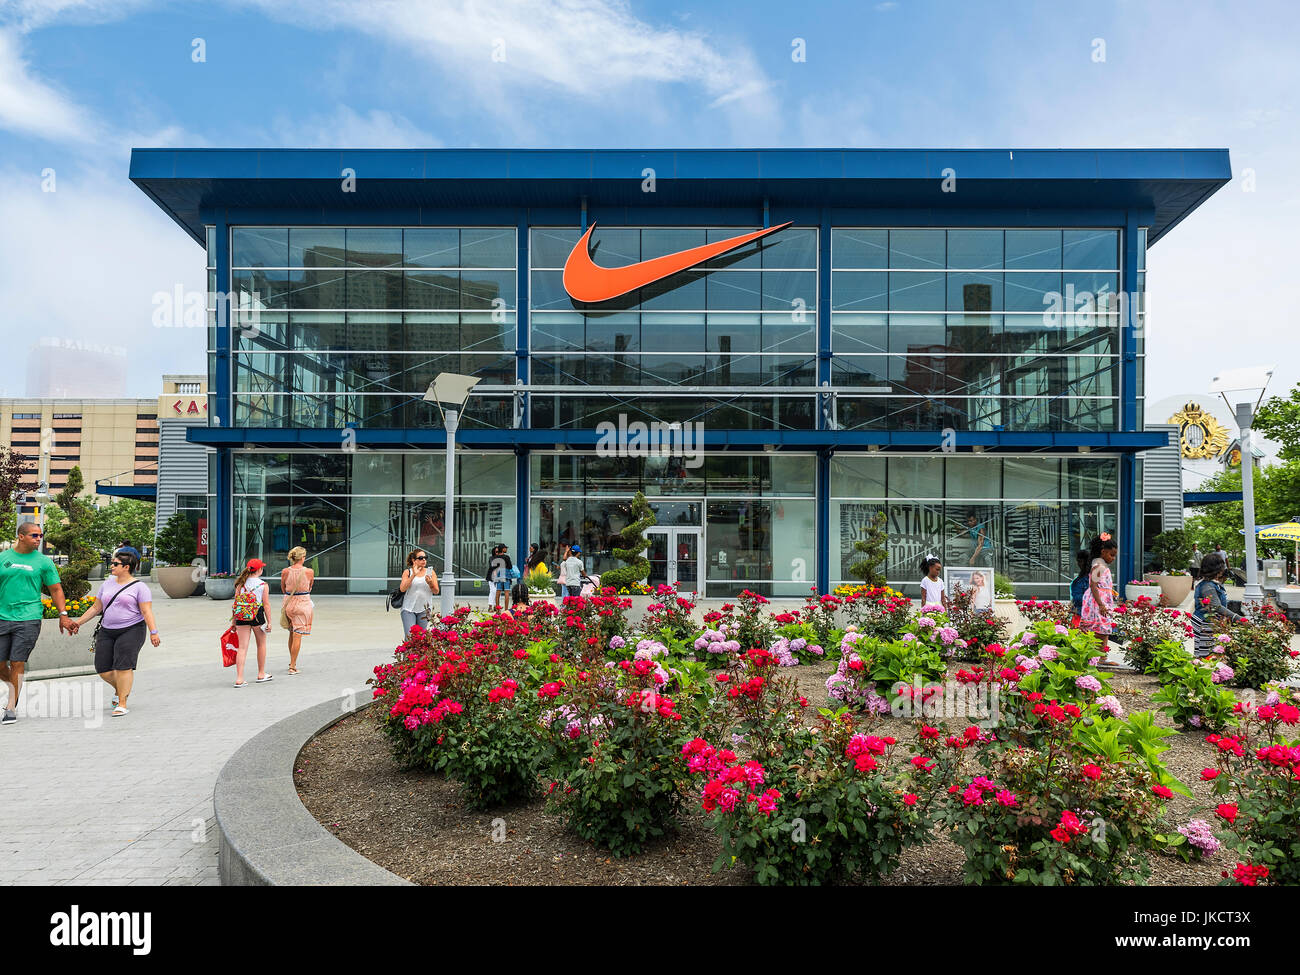 Nike Factory High Resolution Stock